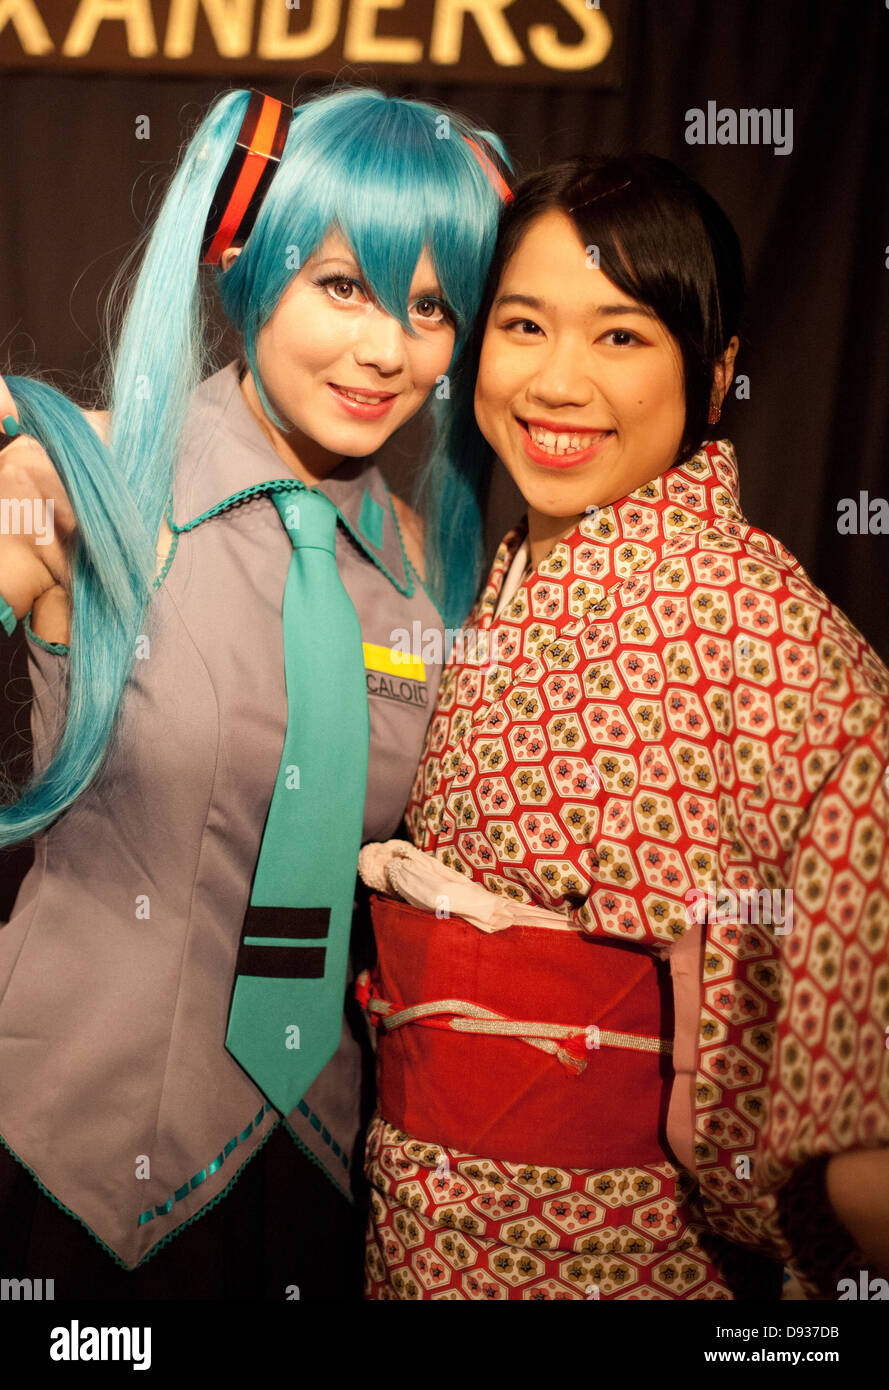 Manga Anime Cosplay Performer With Blue Hair And Young Japanese